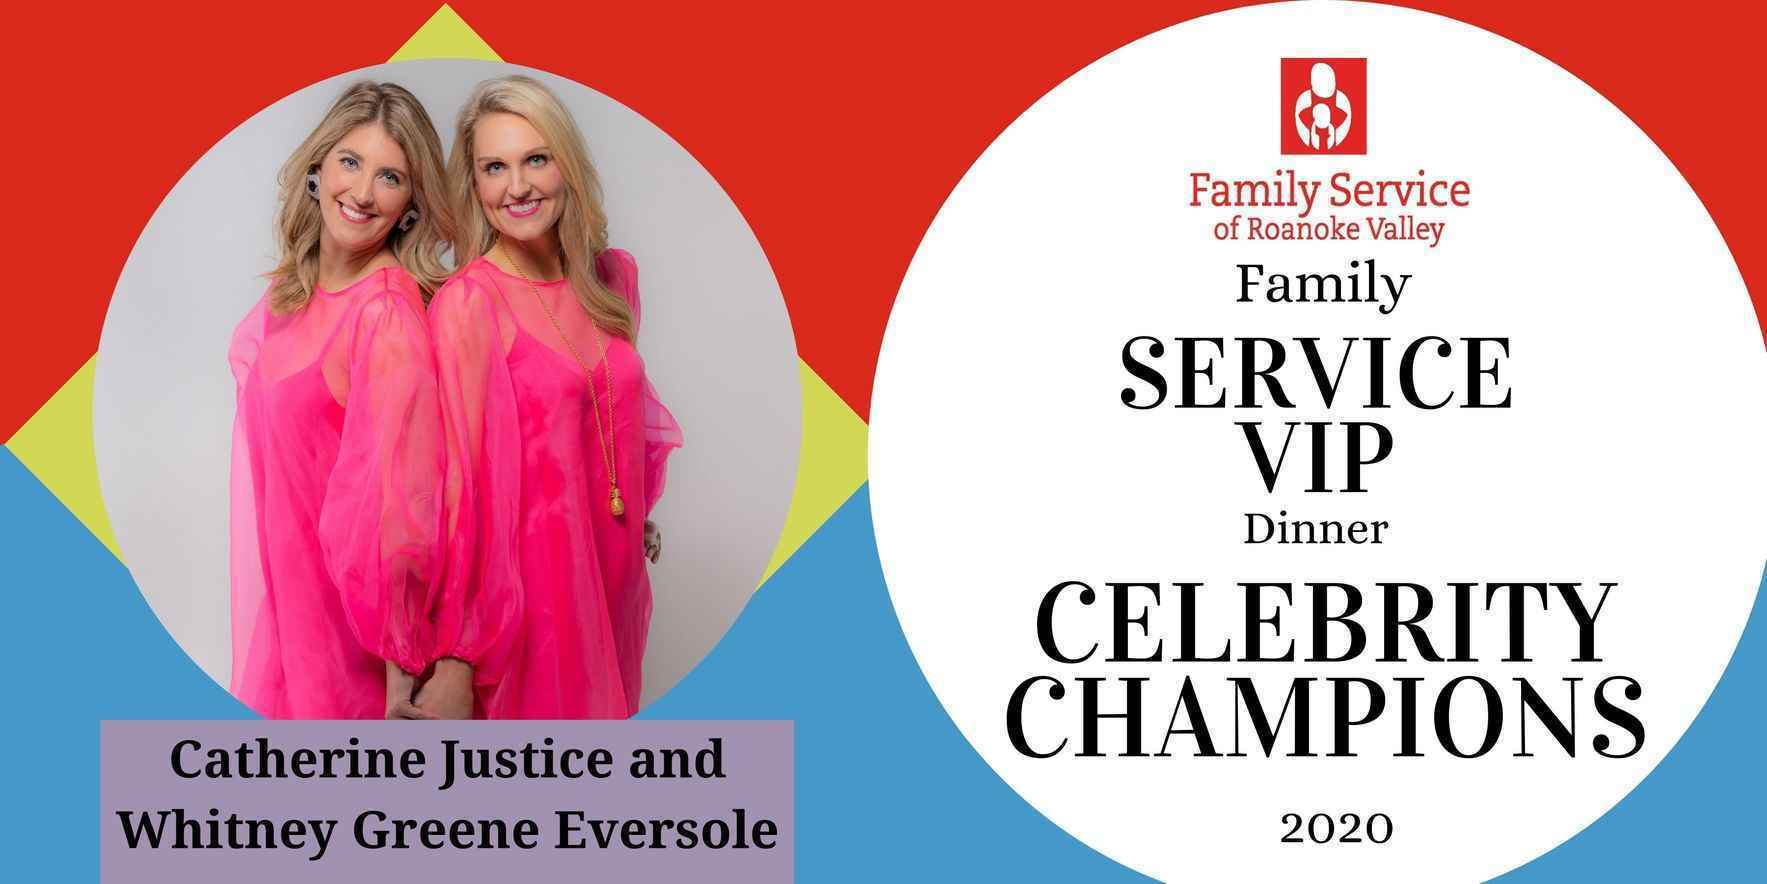 Join Catherine Justice and Whitney Greene Eversole  in helping Family Service restore health and hope for individuals in the Roanoke Valley! image